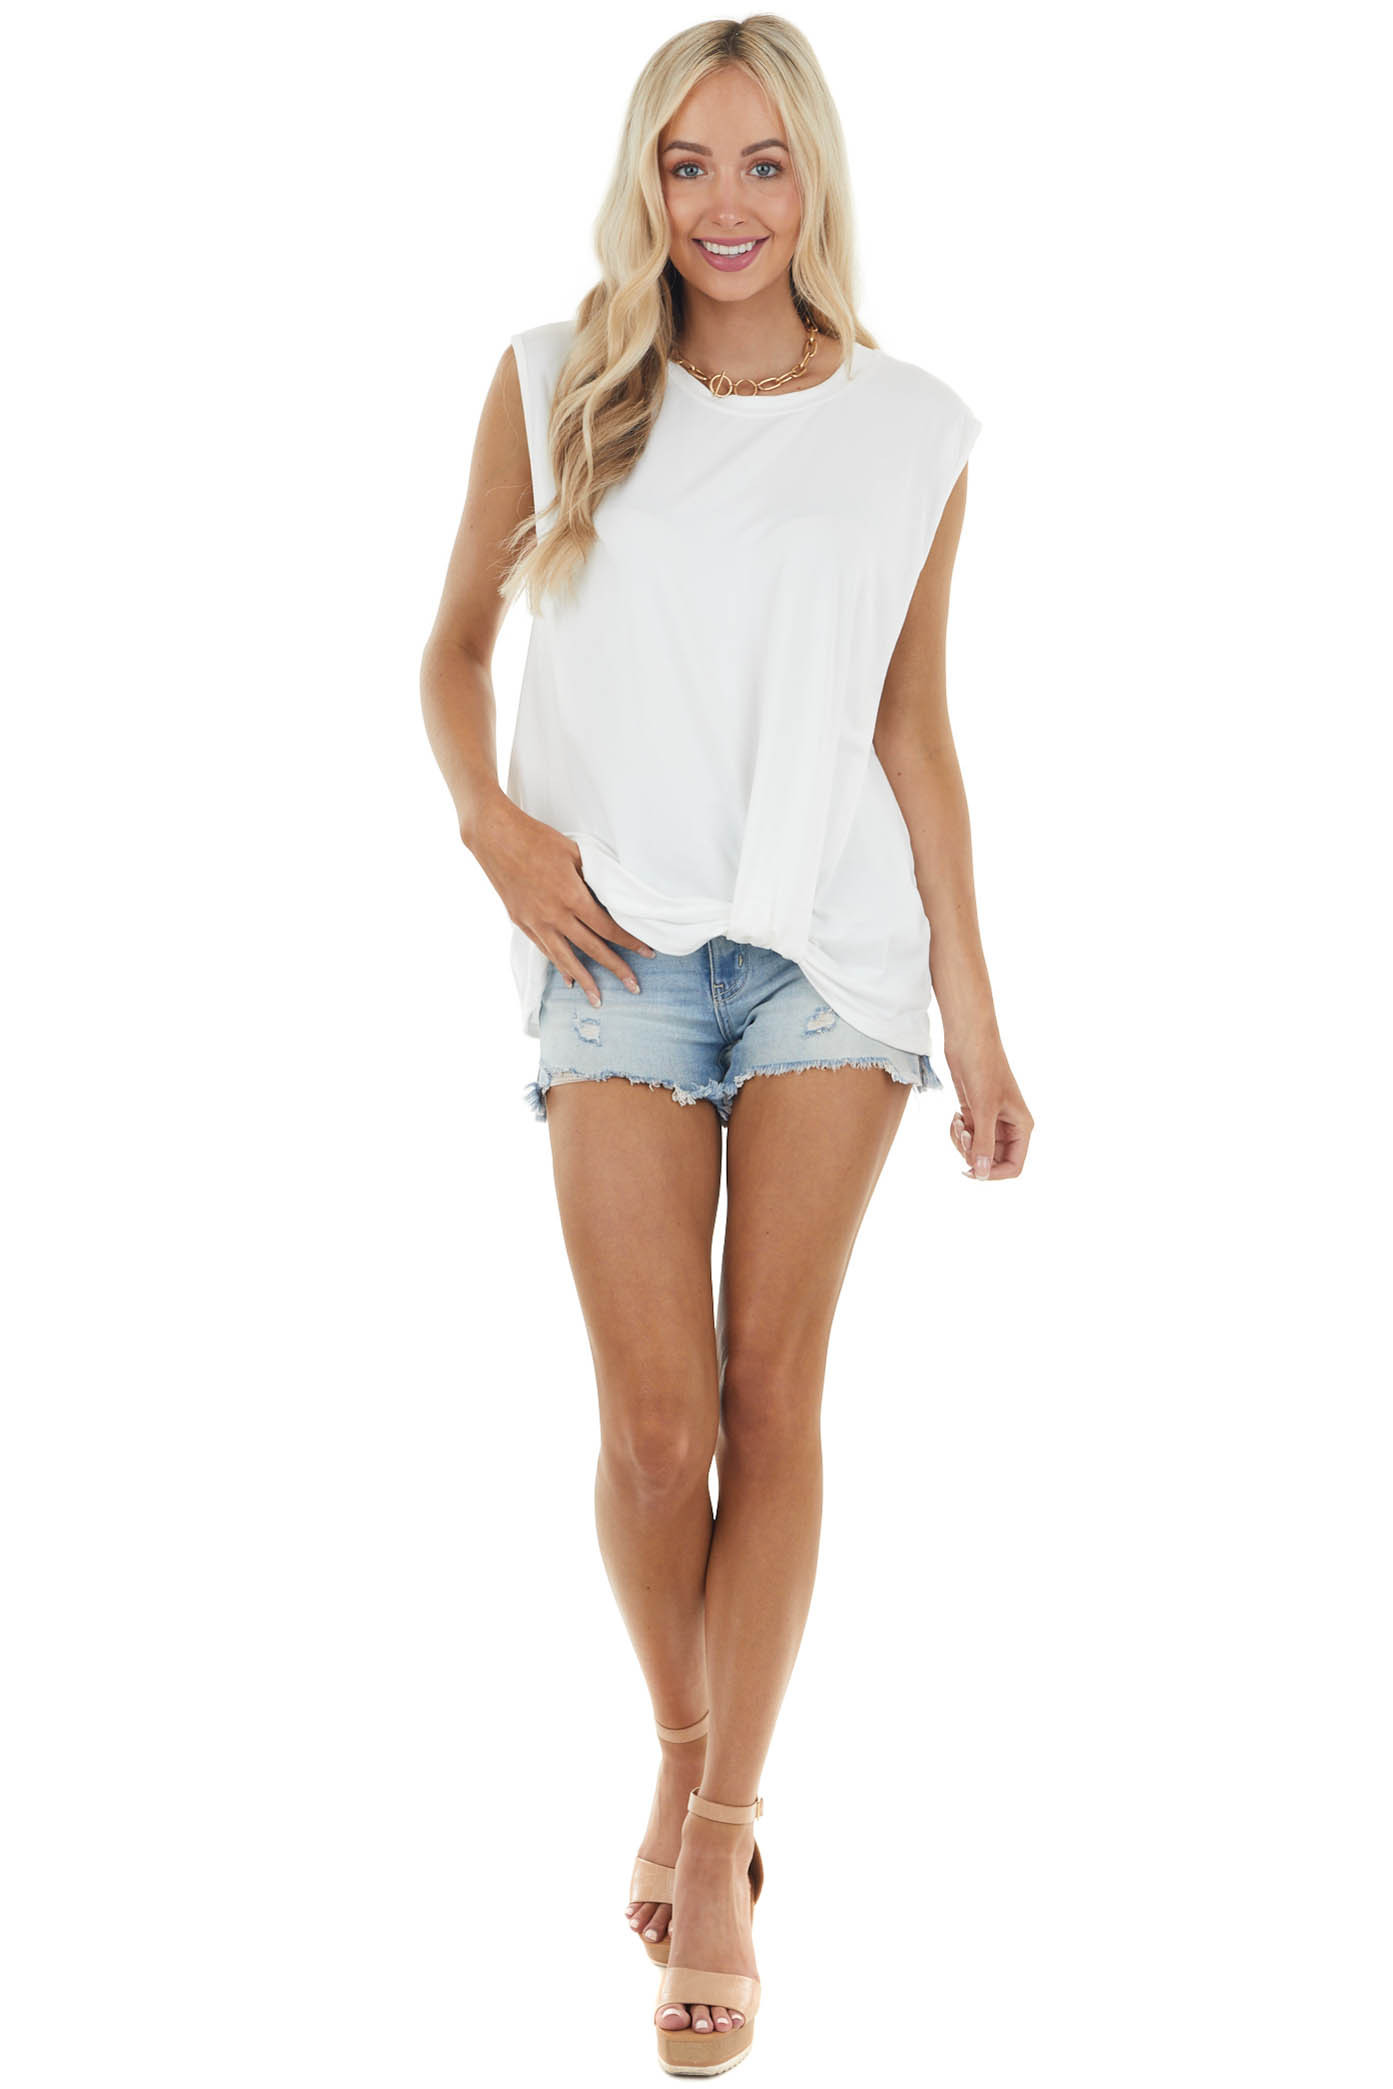 Ivory Sleeveless Knit Muscle Tank Top with Front Knot